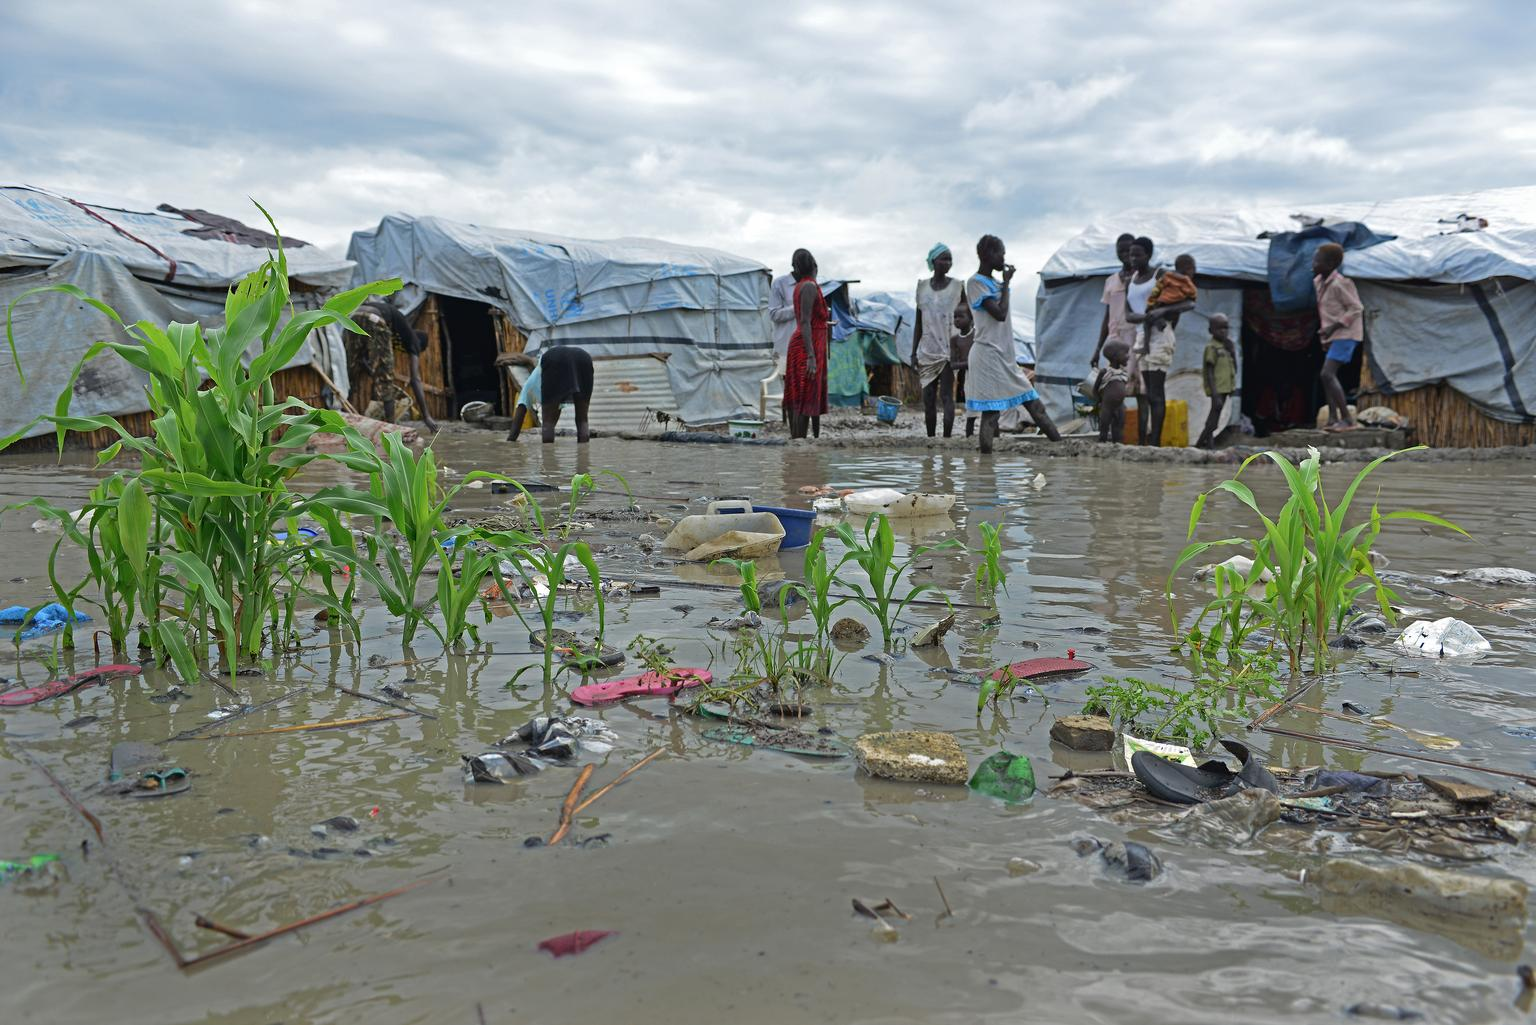 Displaced women and children stand in floodwaters outside shelters, near inundated plants and floating garbage, at the Bentiu Protection of Civilians (PoC) site, South Sudan.